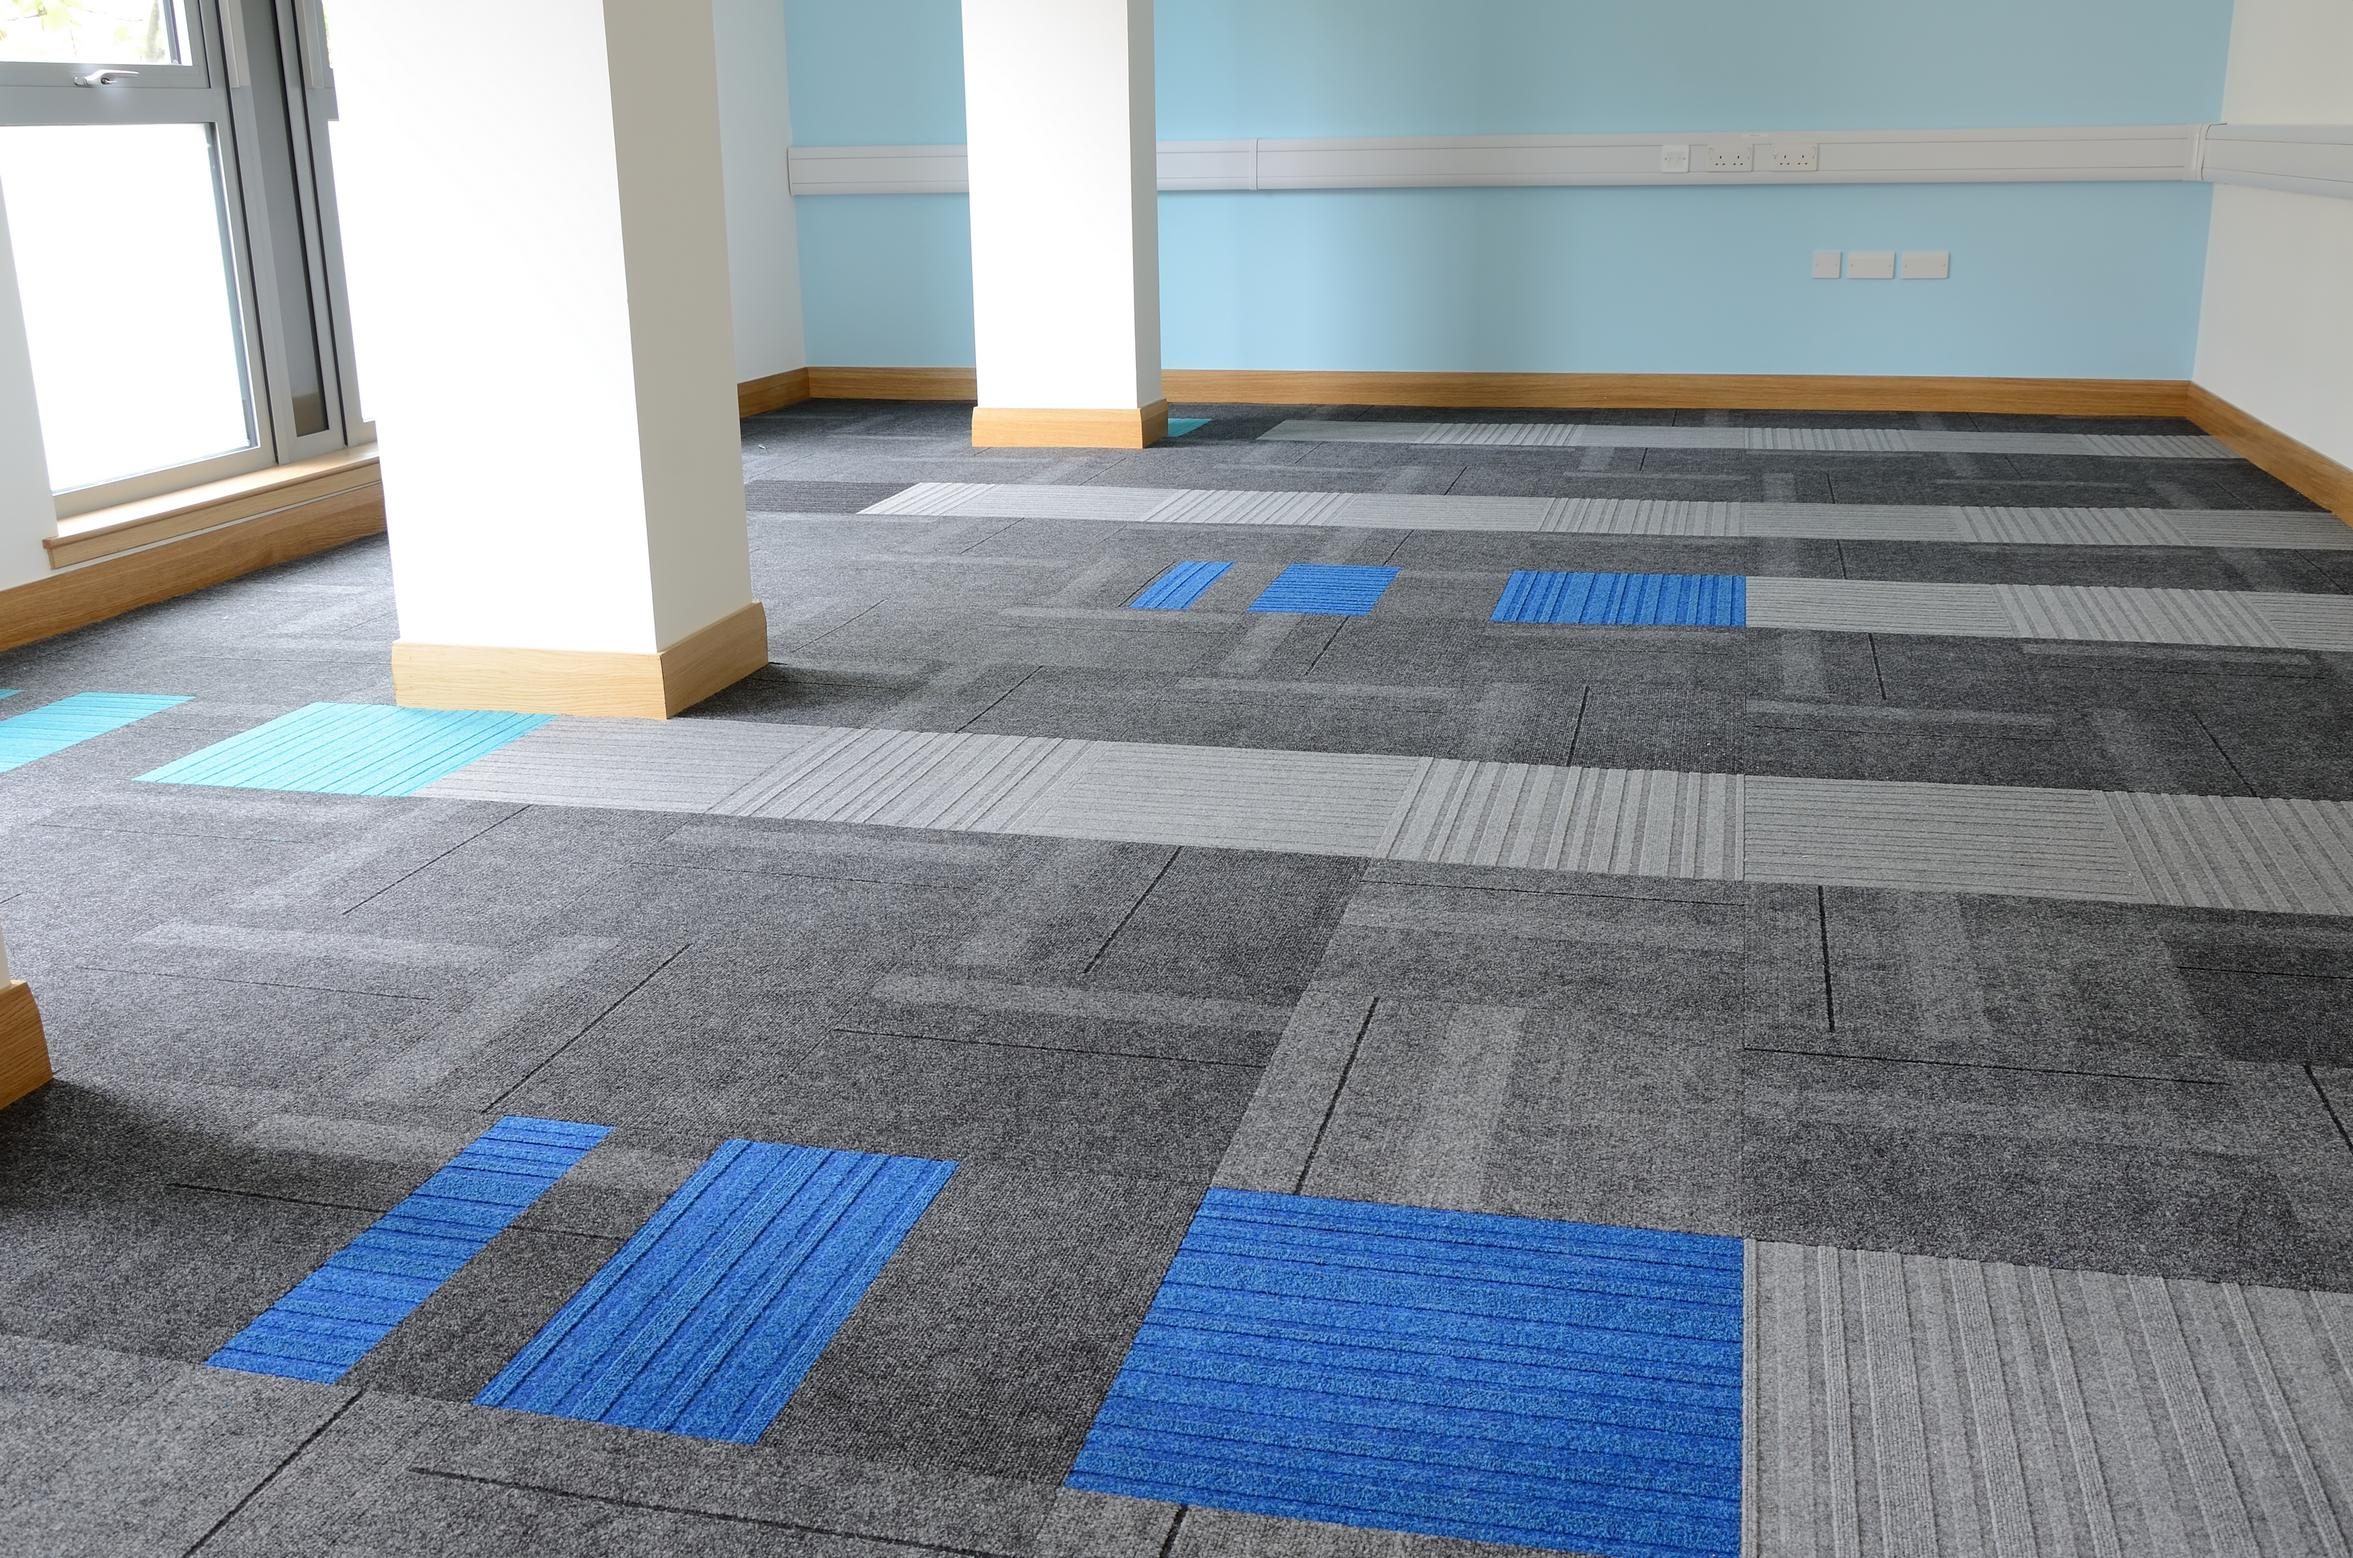 Structure Bonded 174 Carpet Tiles At Inverclyde Council In